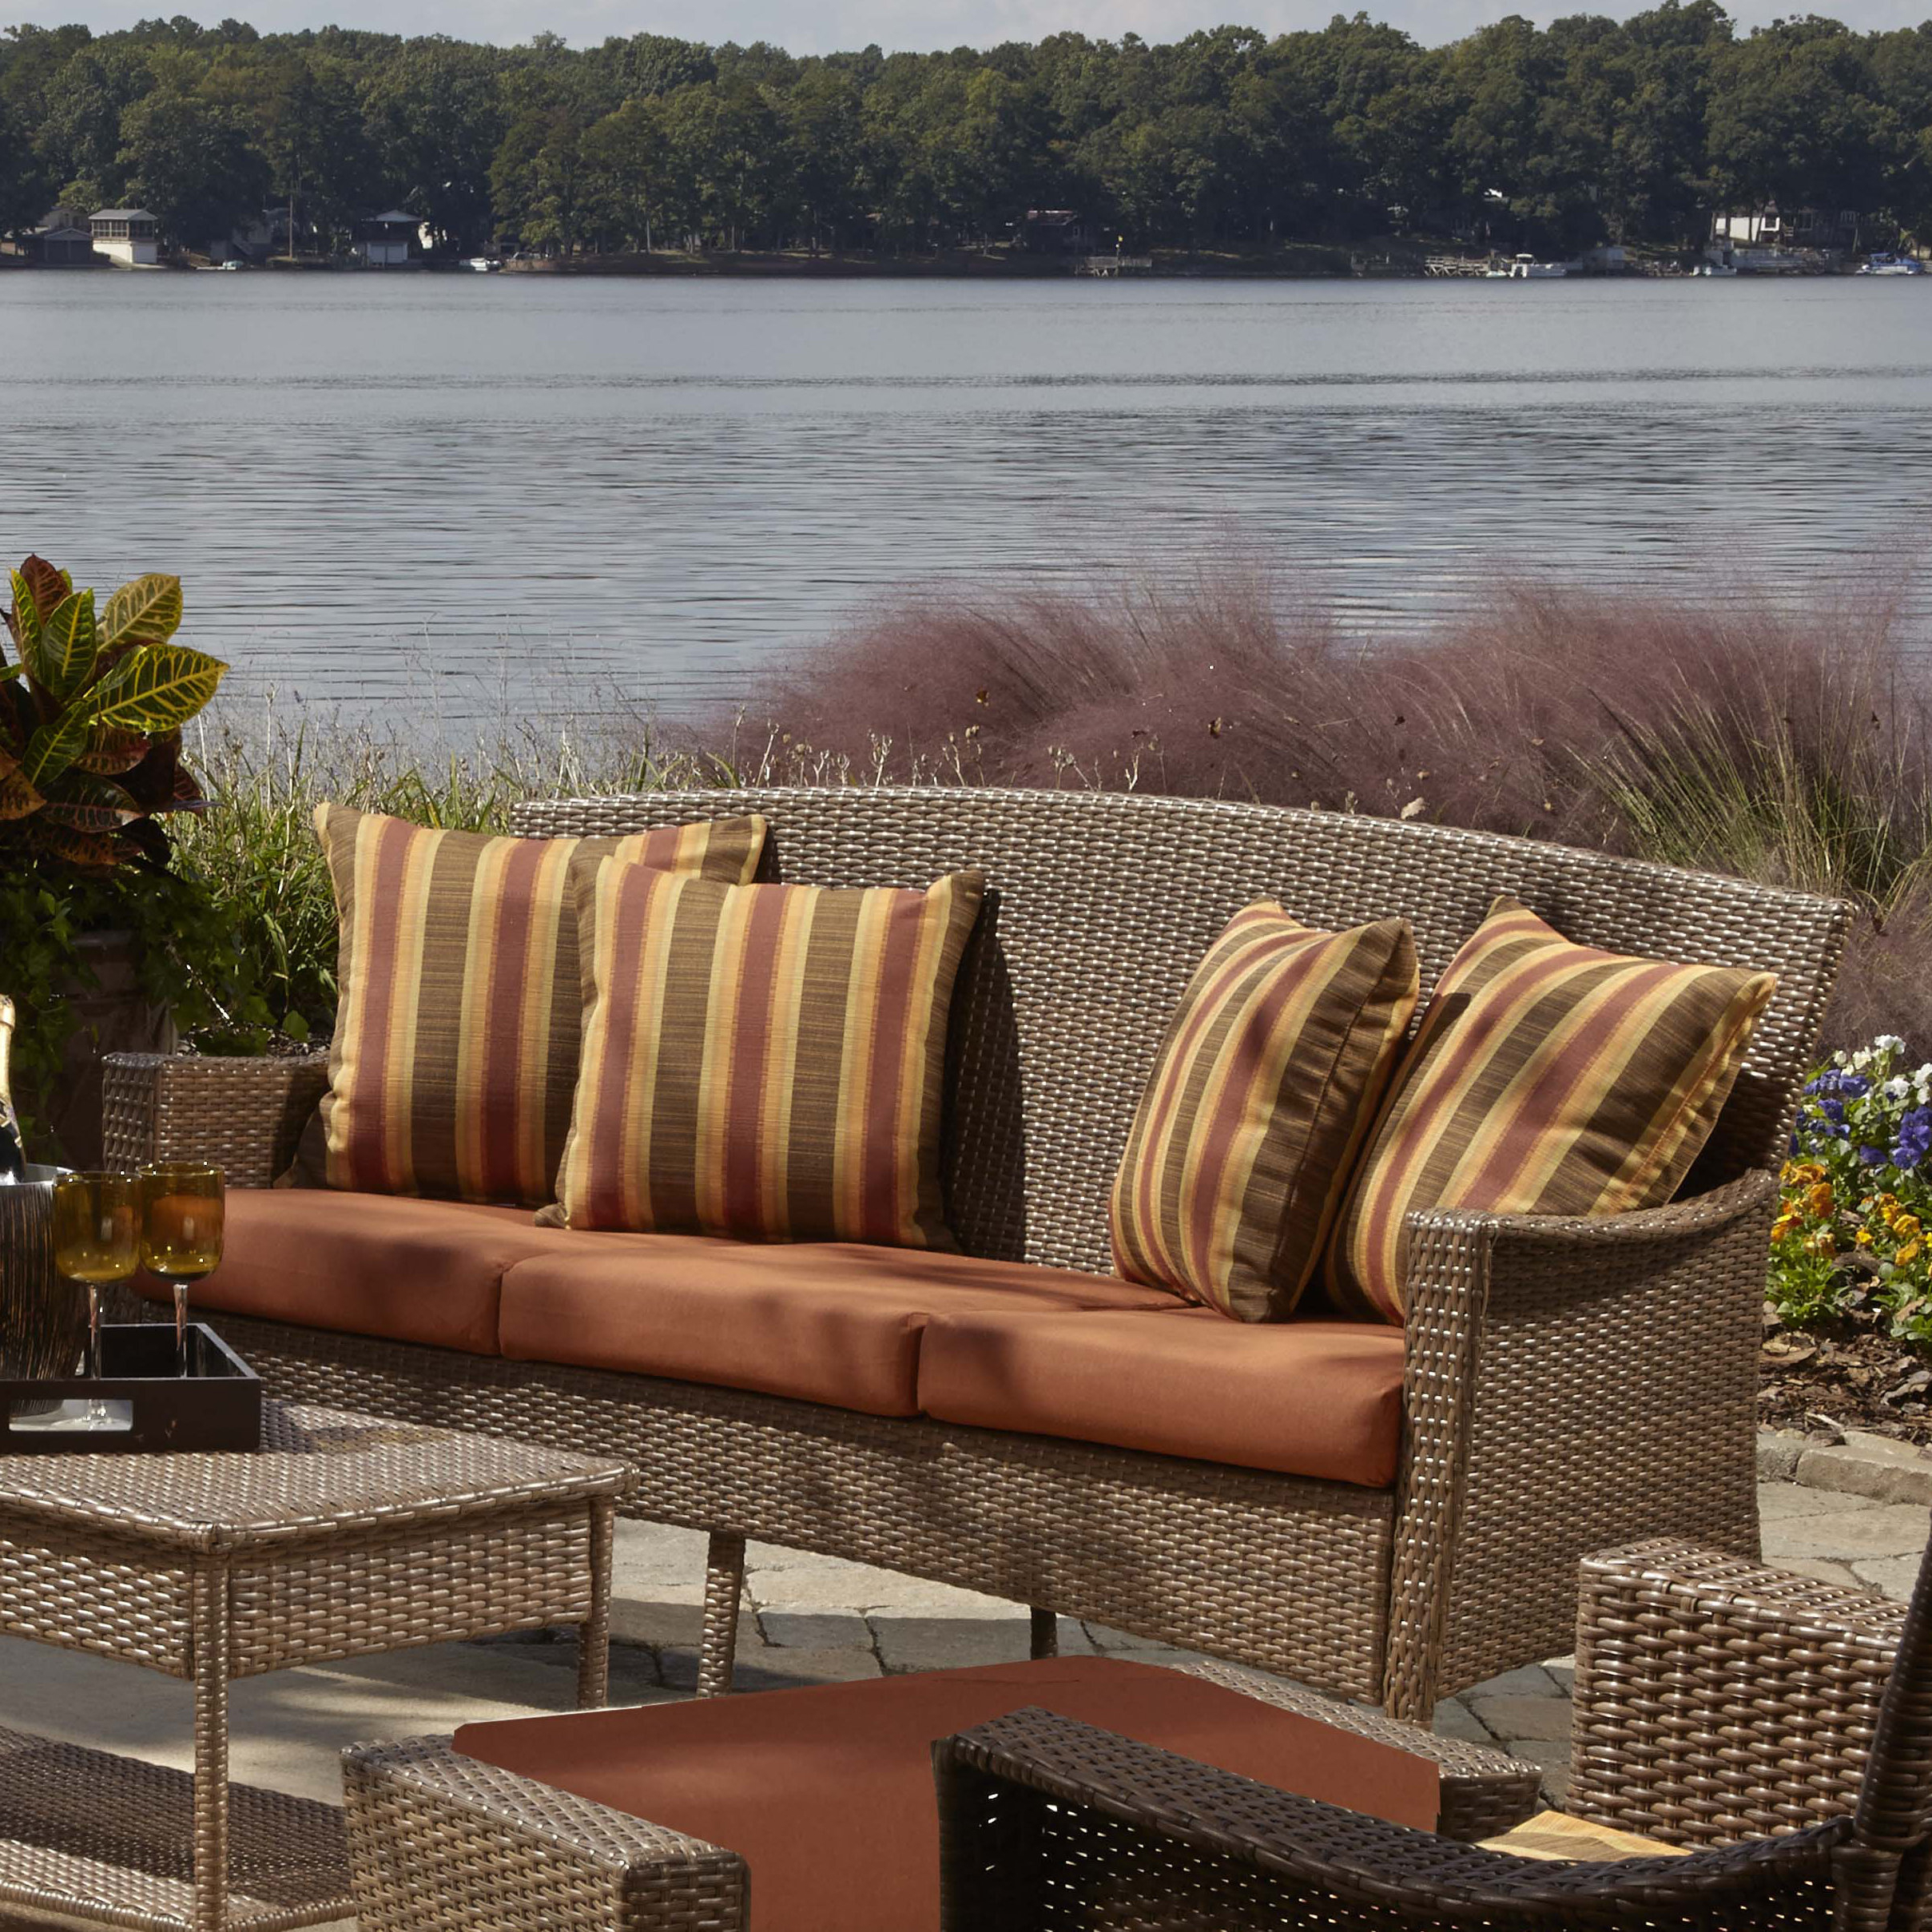 Newest Katzer Patio Sofas With Cushions Within Key Biscayne Patio Sofa With Cushions (Gallery 10 of 20)